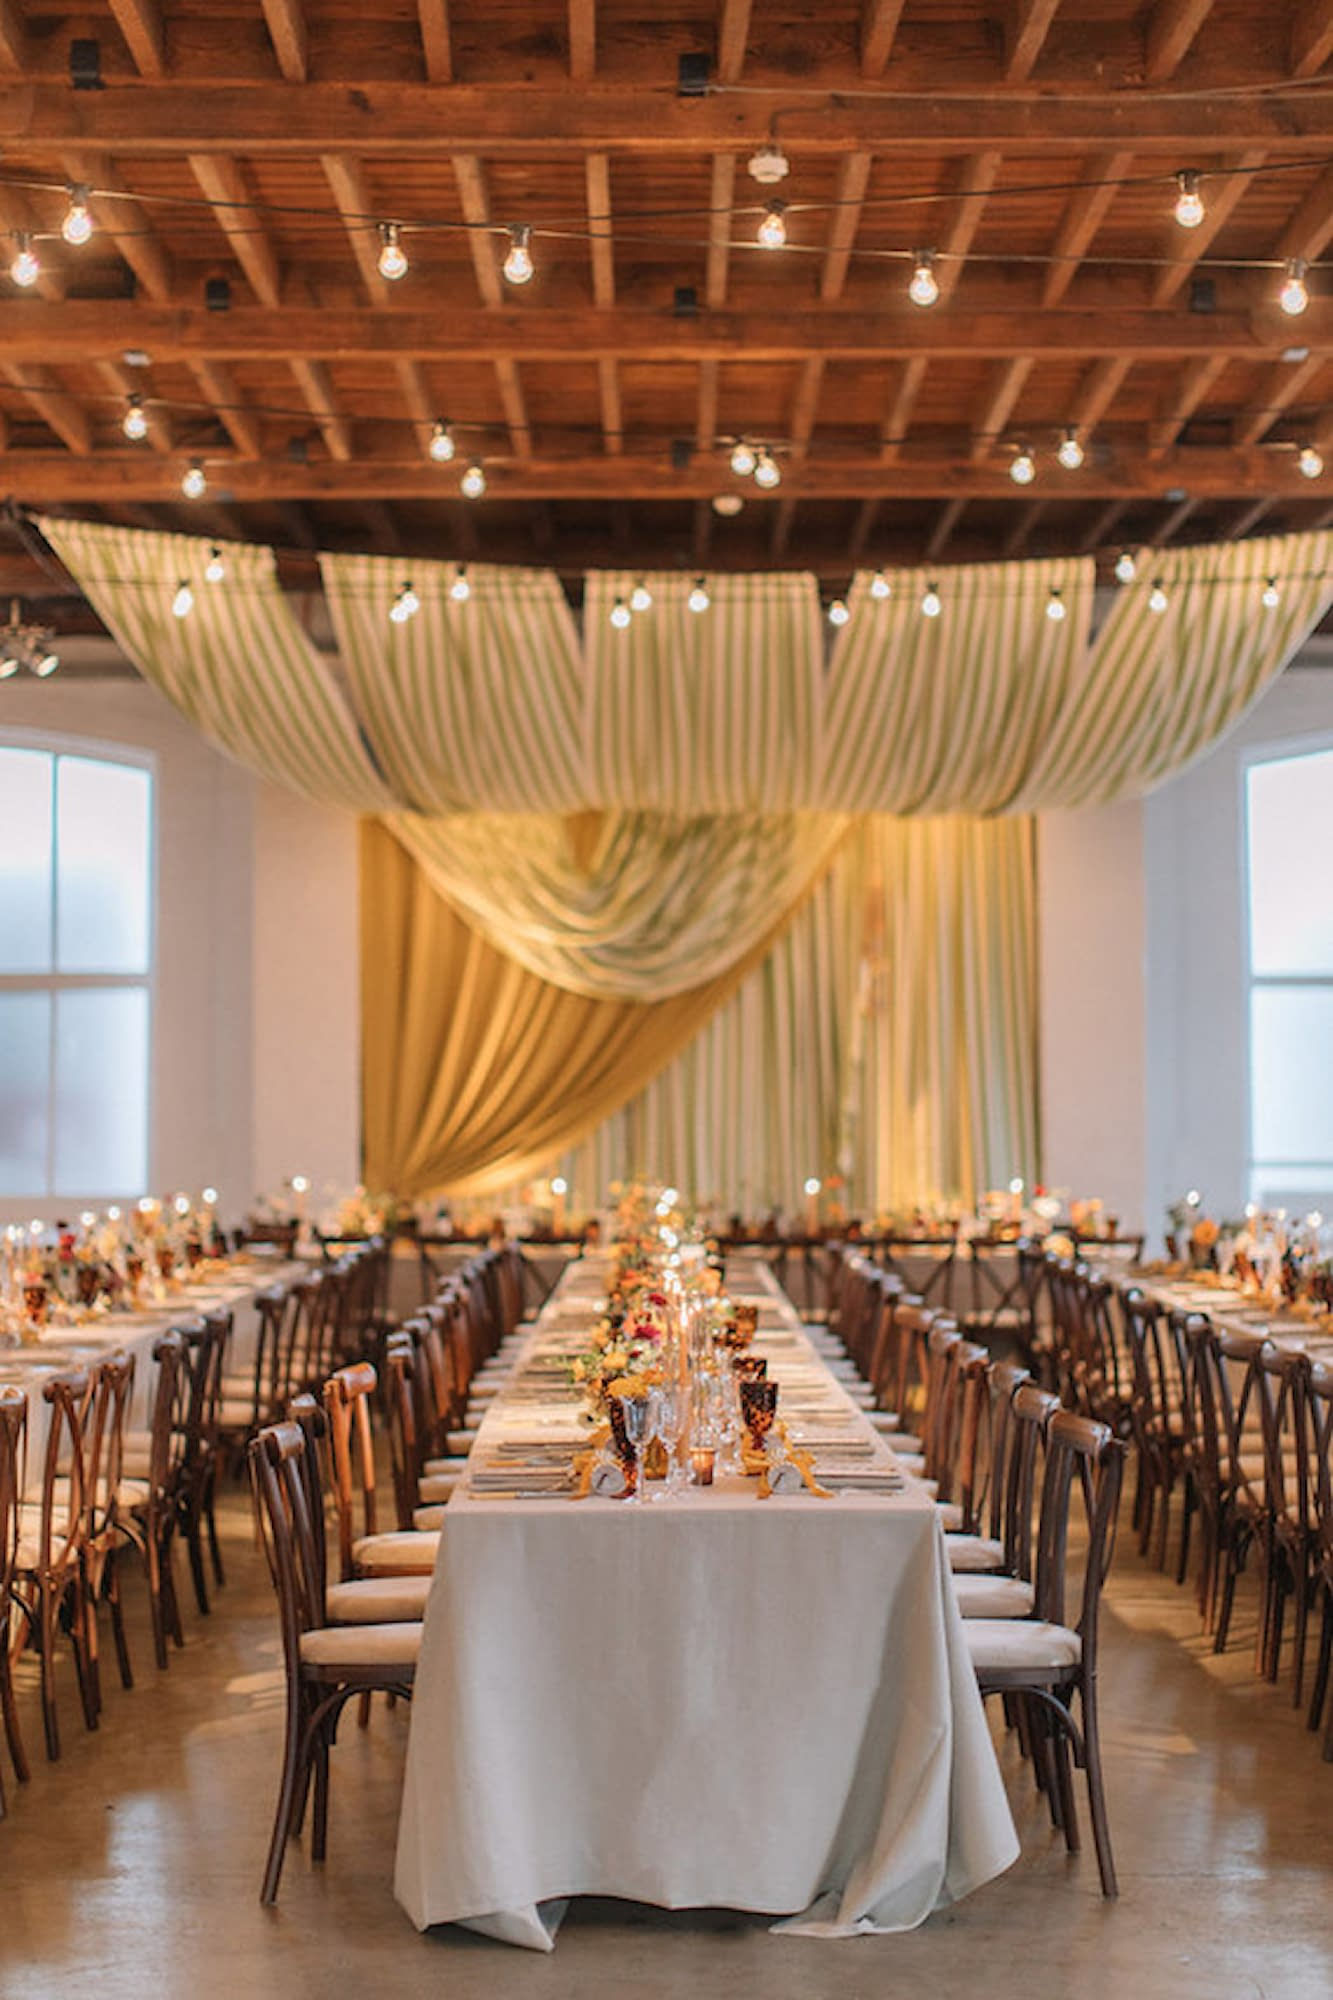 Bespoke top table backdrop with ceiling drapes in green white and mustard at Trinity Buoy Wharf wedding venue London